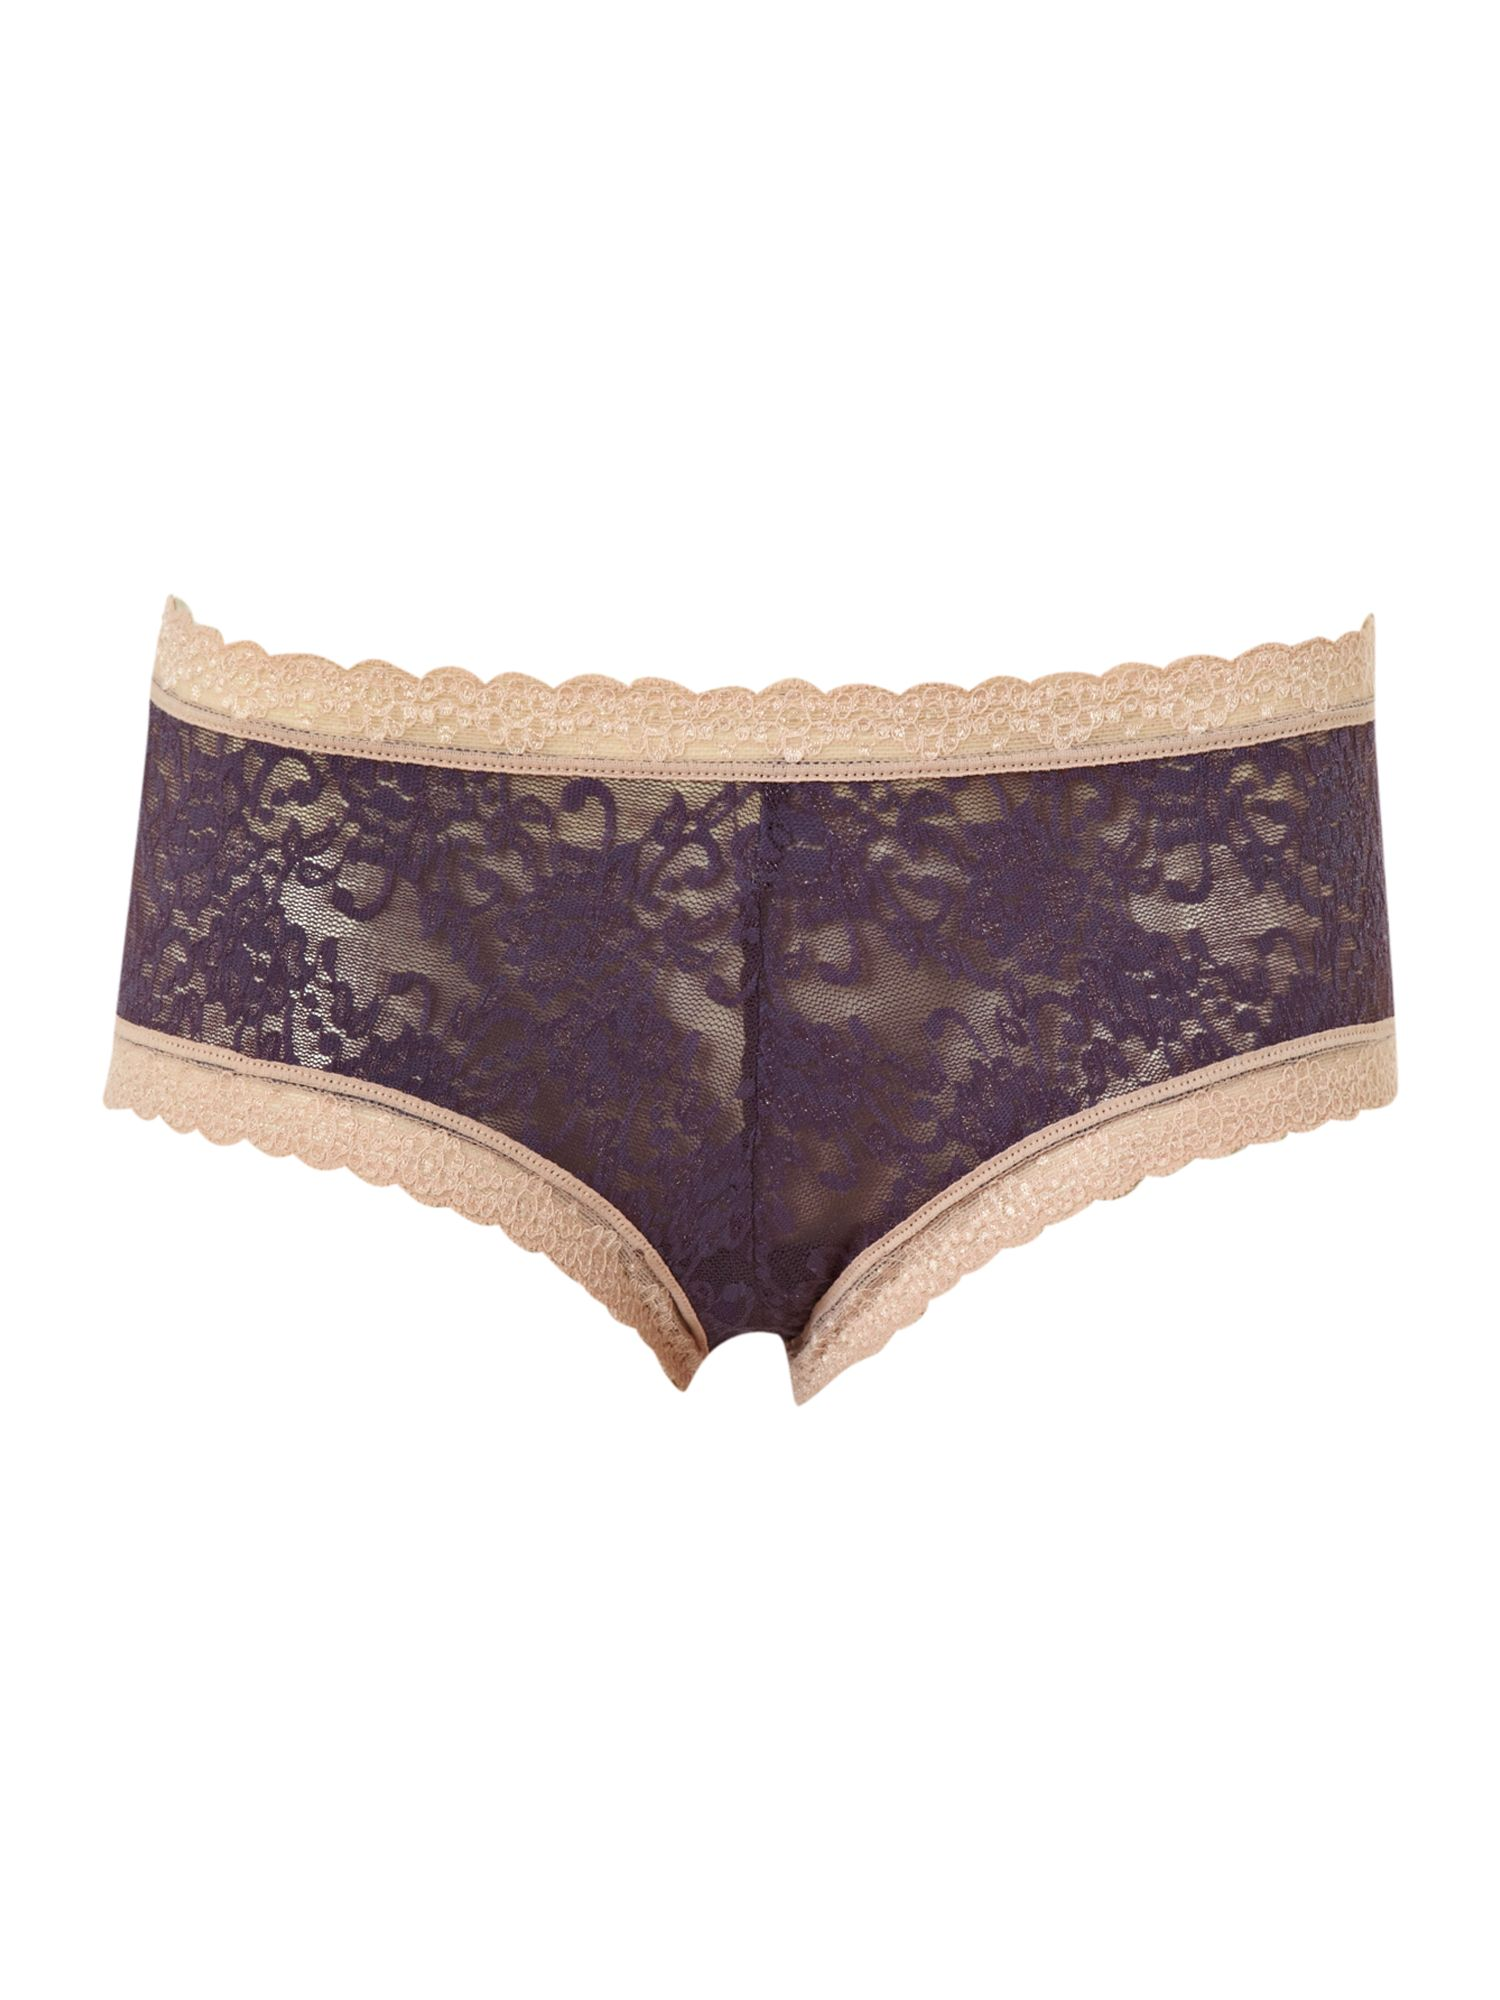 Women's Mary Portas & Kinky Knickers Straight edge knicker, Silver